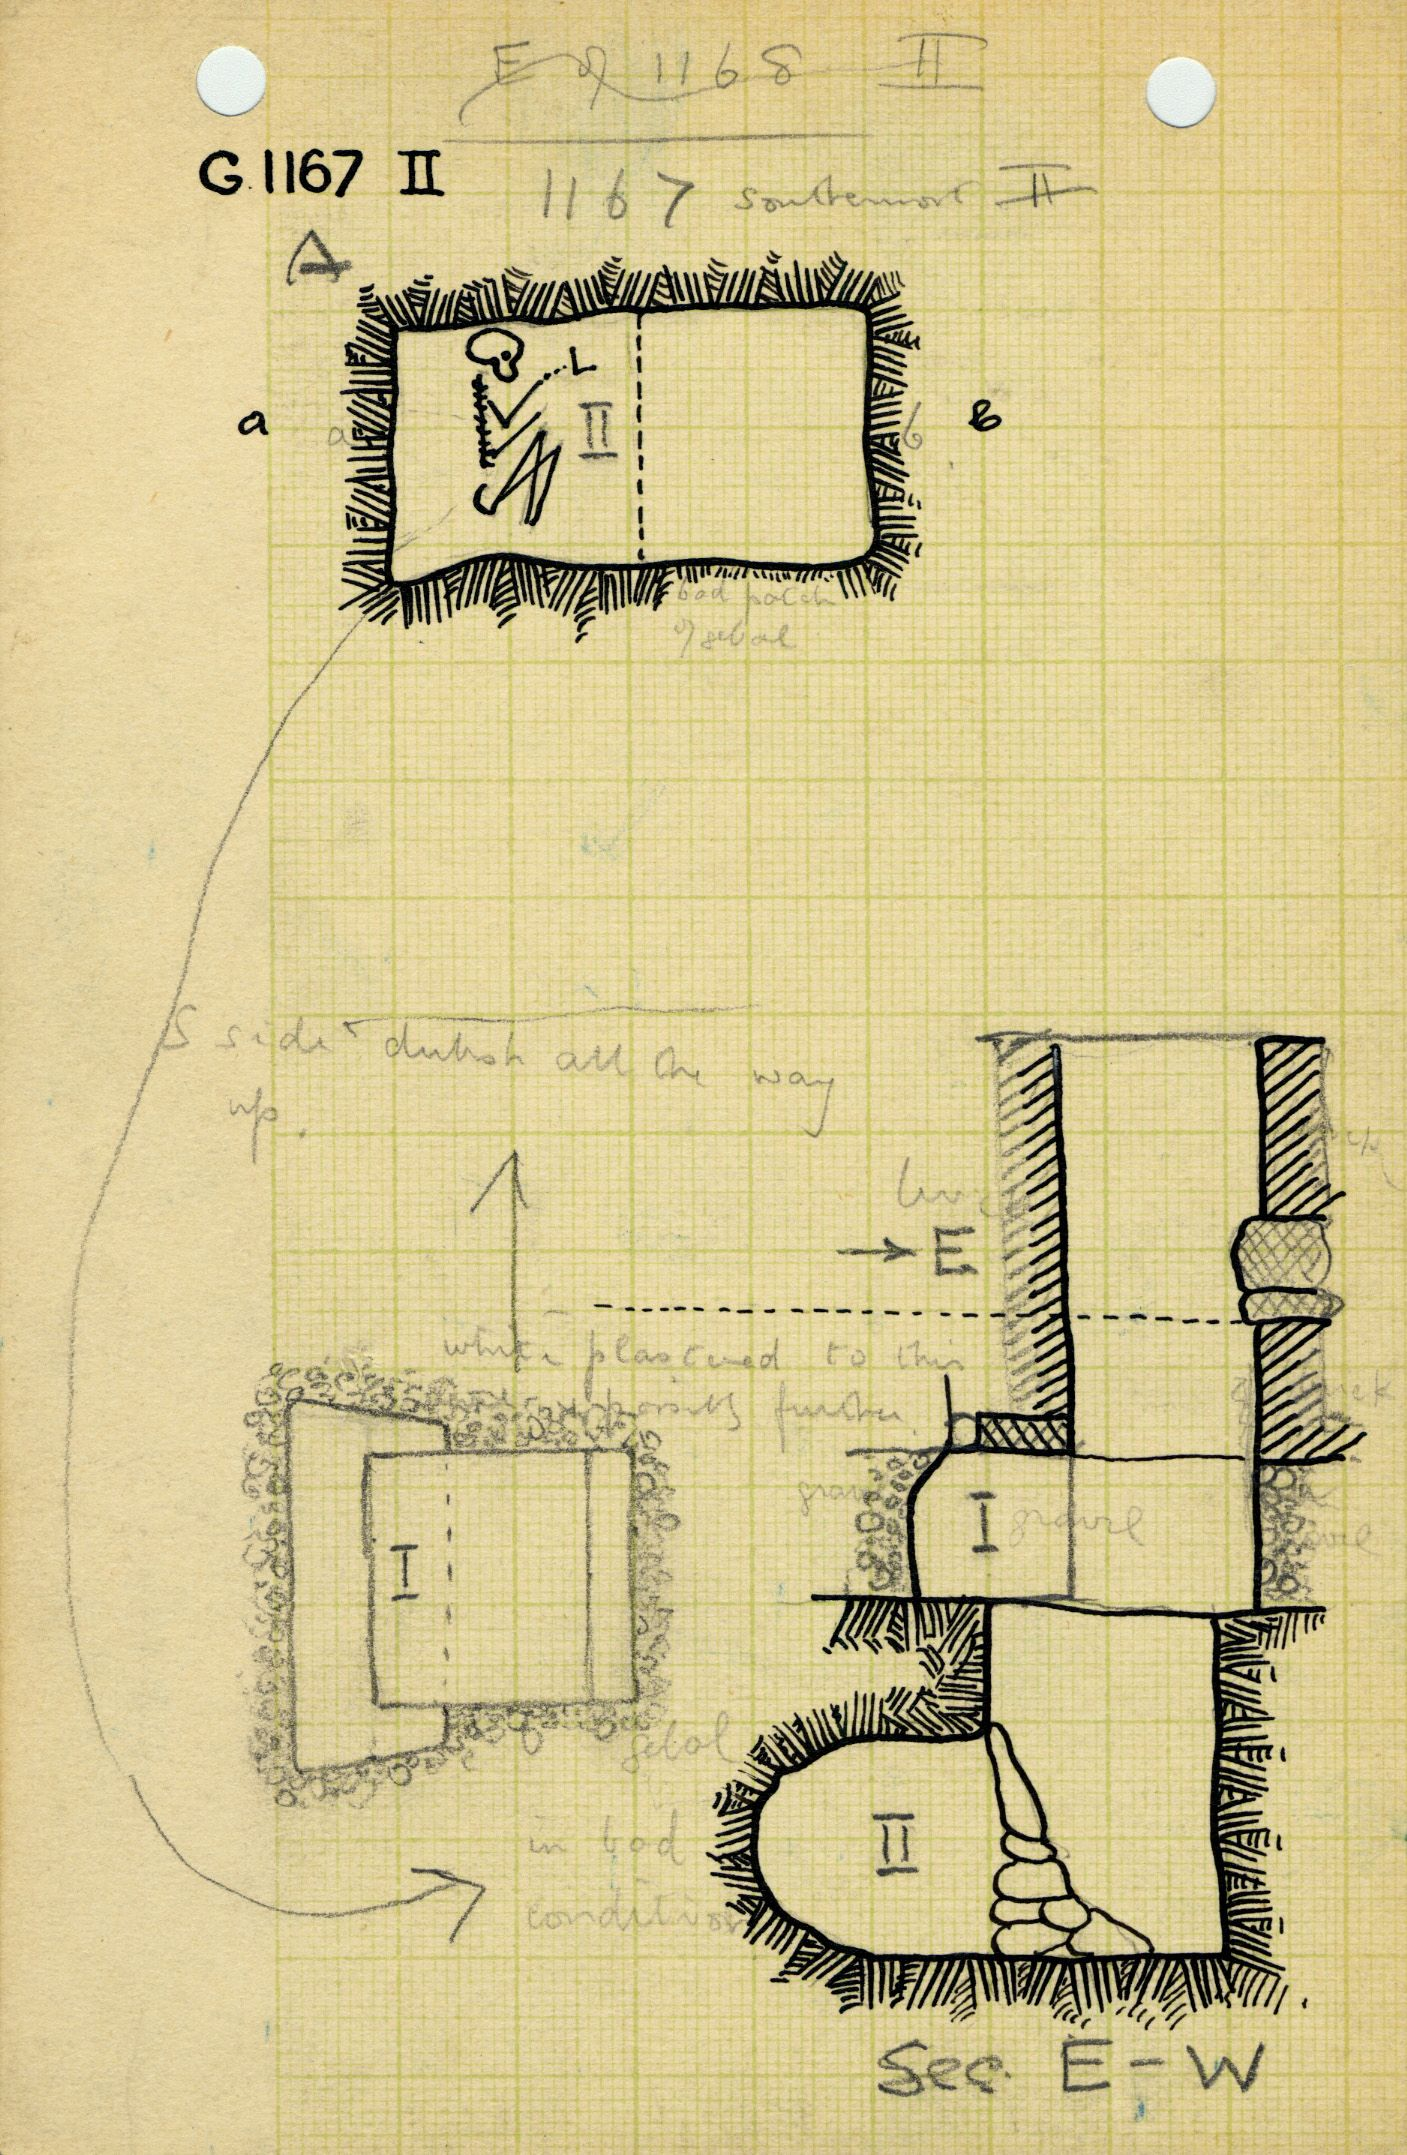 Maps and plans: G 1167, Shaft A (II)